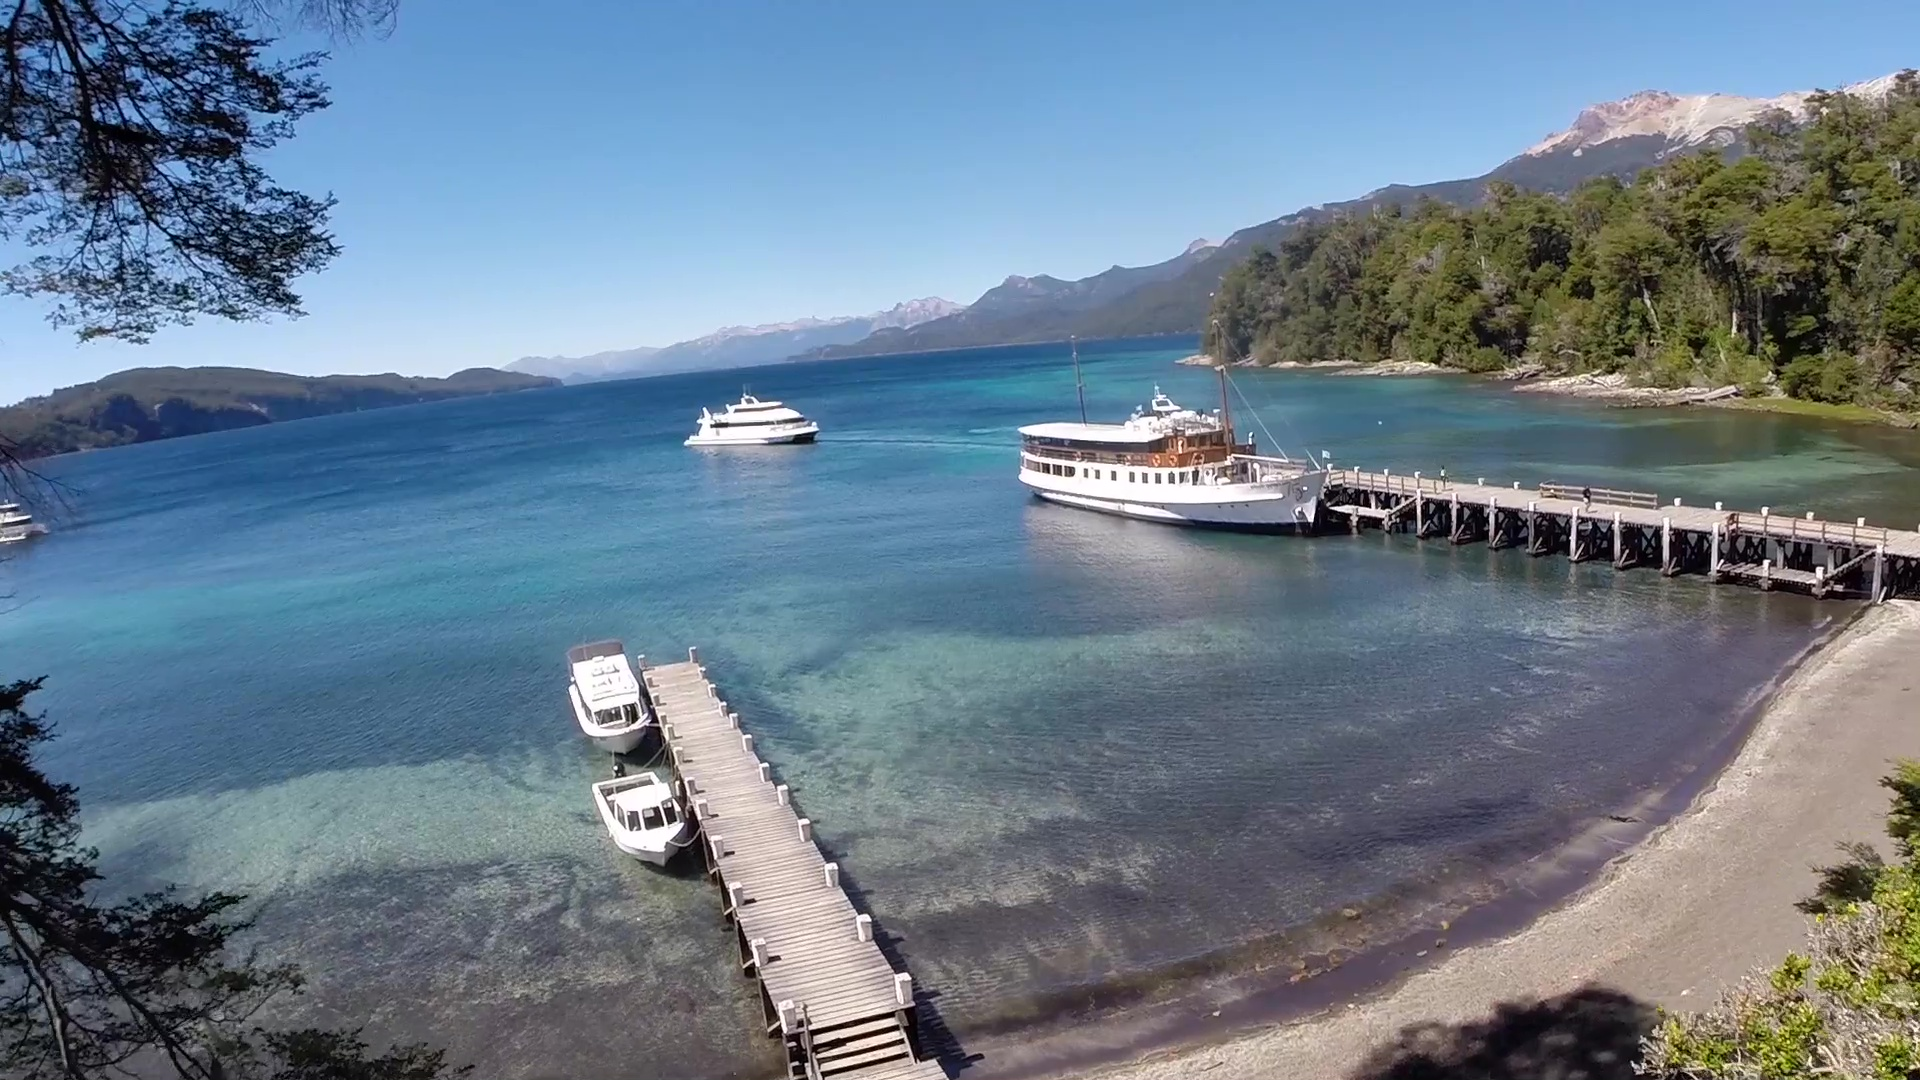 phantom drone with camera with Isla Victoria Lago Nahuel Huapi Bariloche Argentina on Phantom 4 Pro O Novo Drone Dji E Para Voce moreover Lion Rock Piha Beach New Zealand likewise 28E1587B C762 4DB3 9973 C9BFCFC345AB besides Agua Azul Waterfalls Chiapas Mx together with Brasov.